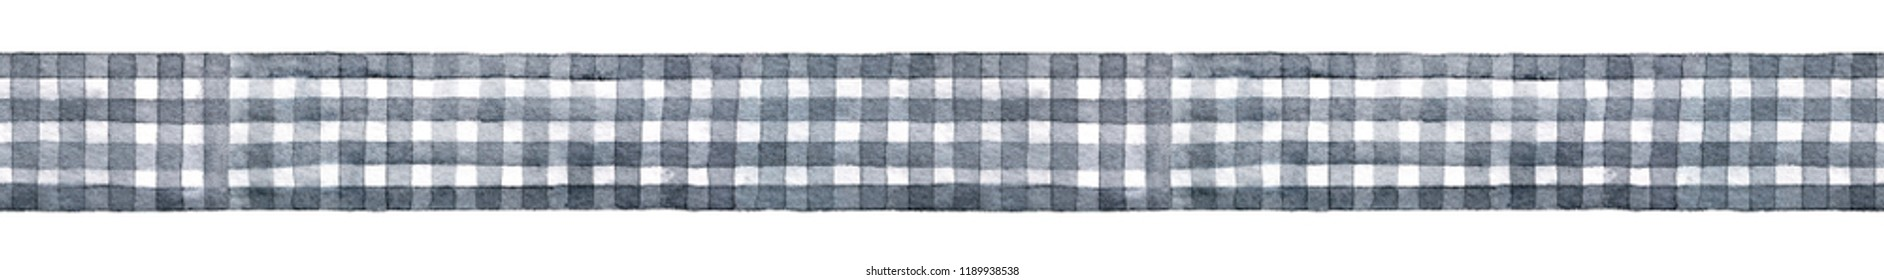 Checkered Ribbon Images Stock Photos Vectors Shutterstock